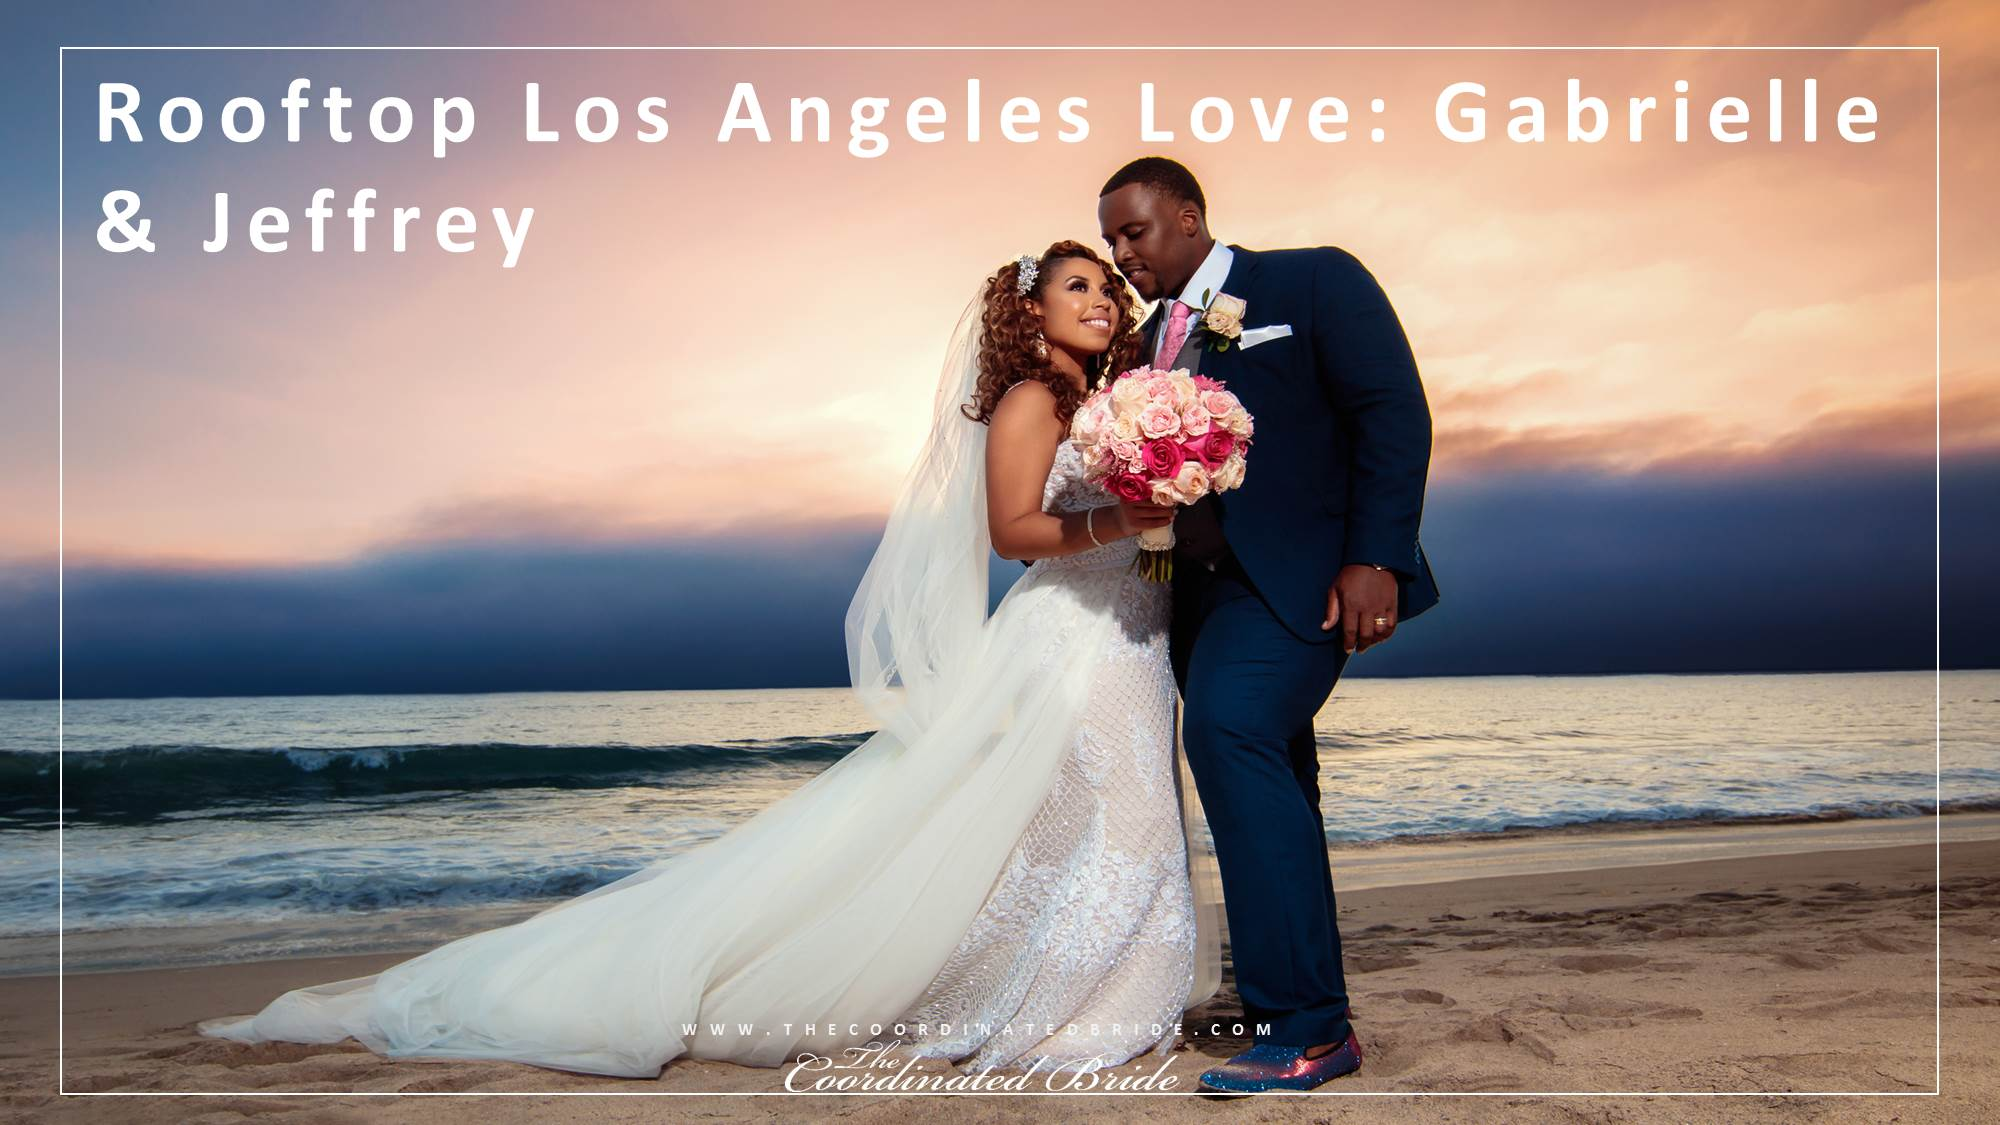 Broadway Takes Hollywood! How a New York Guy & California Girl Fell in Love: Gabrielle & Jeffrey